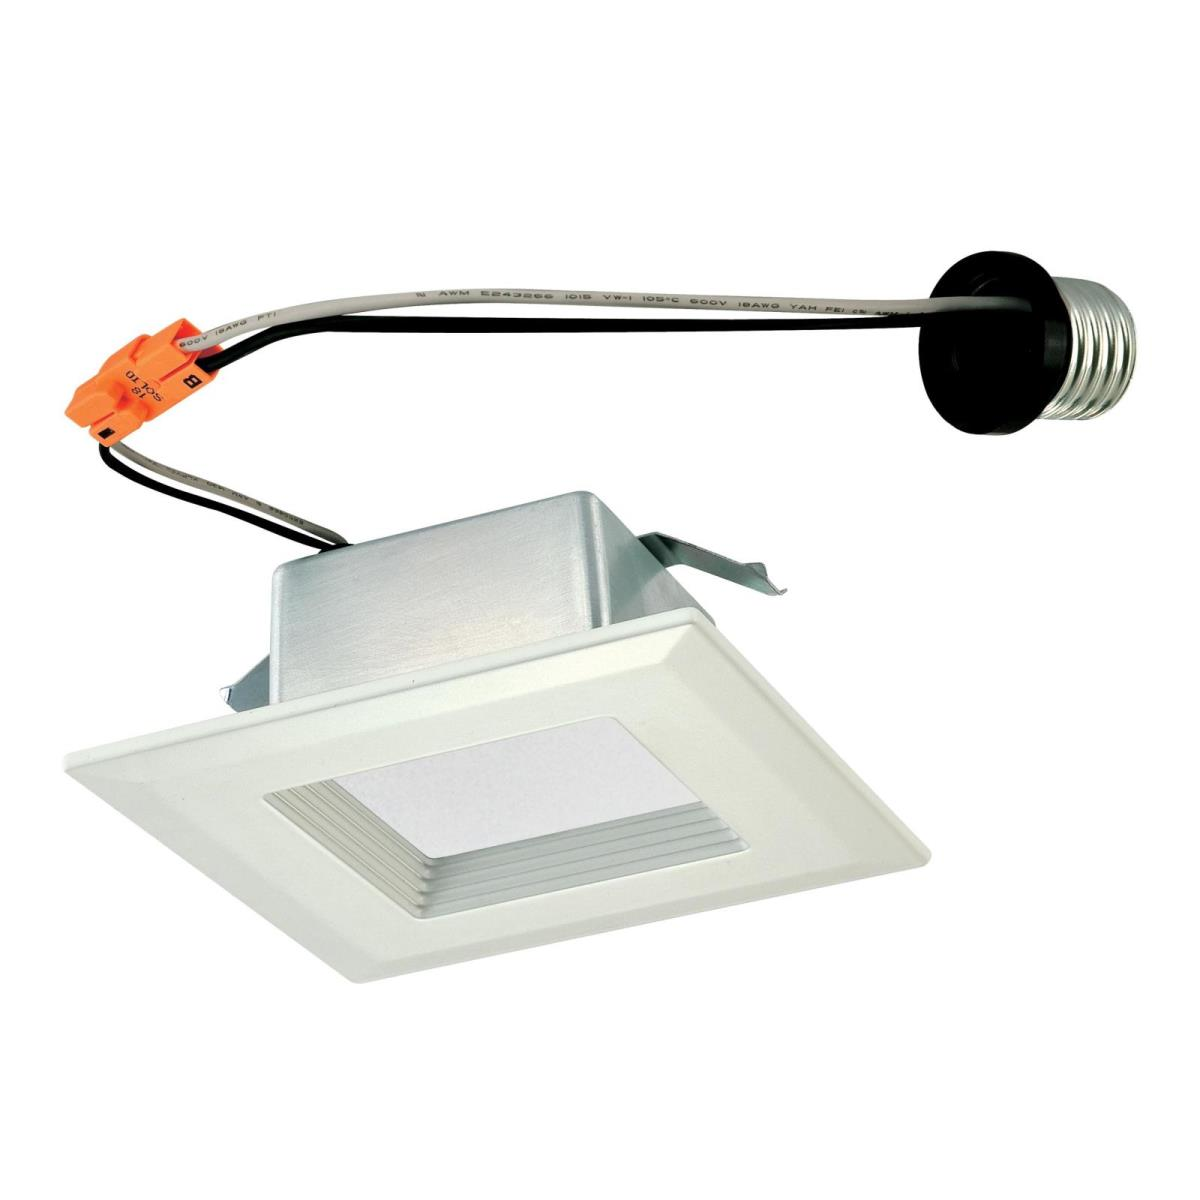 "10W Square Recessed LED Downlight 4"" Dimmable 3000K E26 (Medium) Base, 120 Volt, Box"